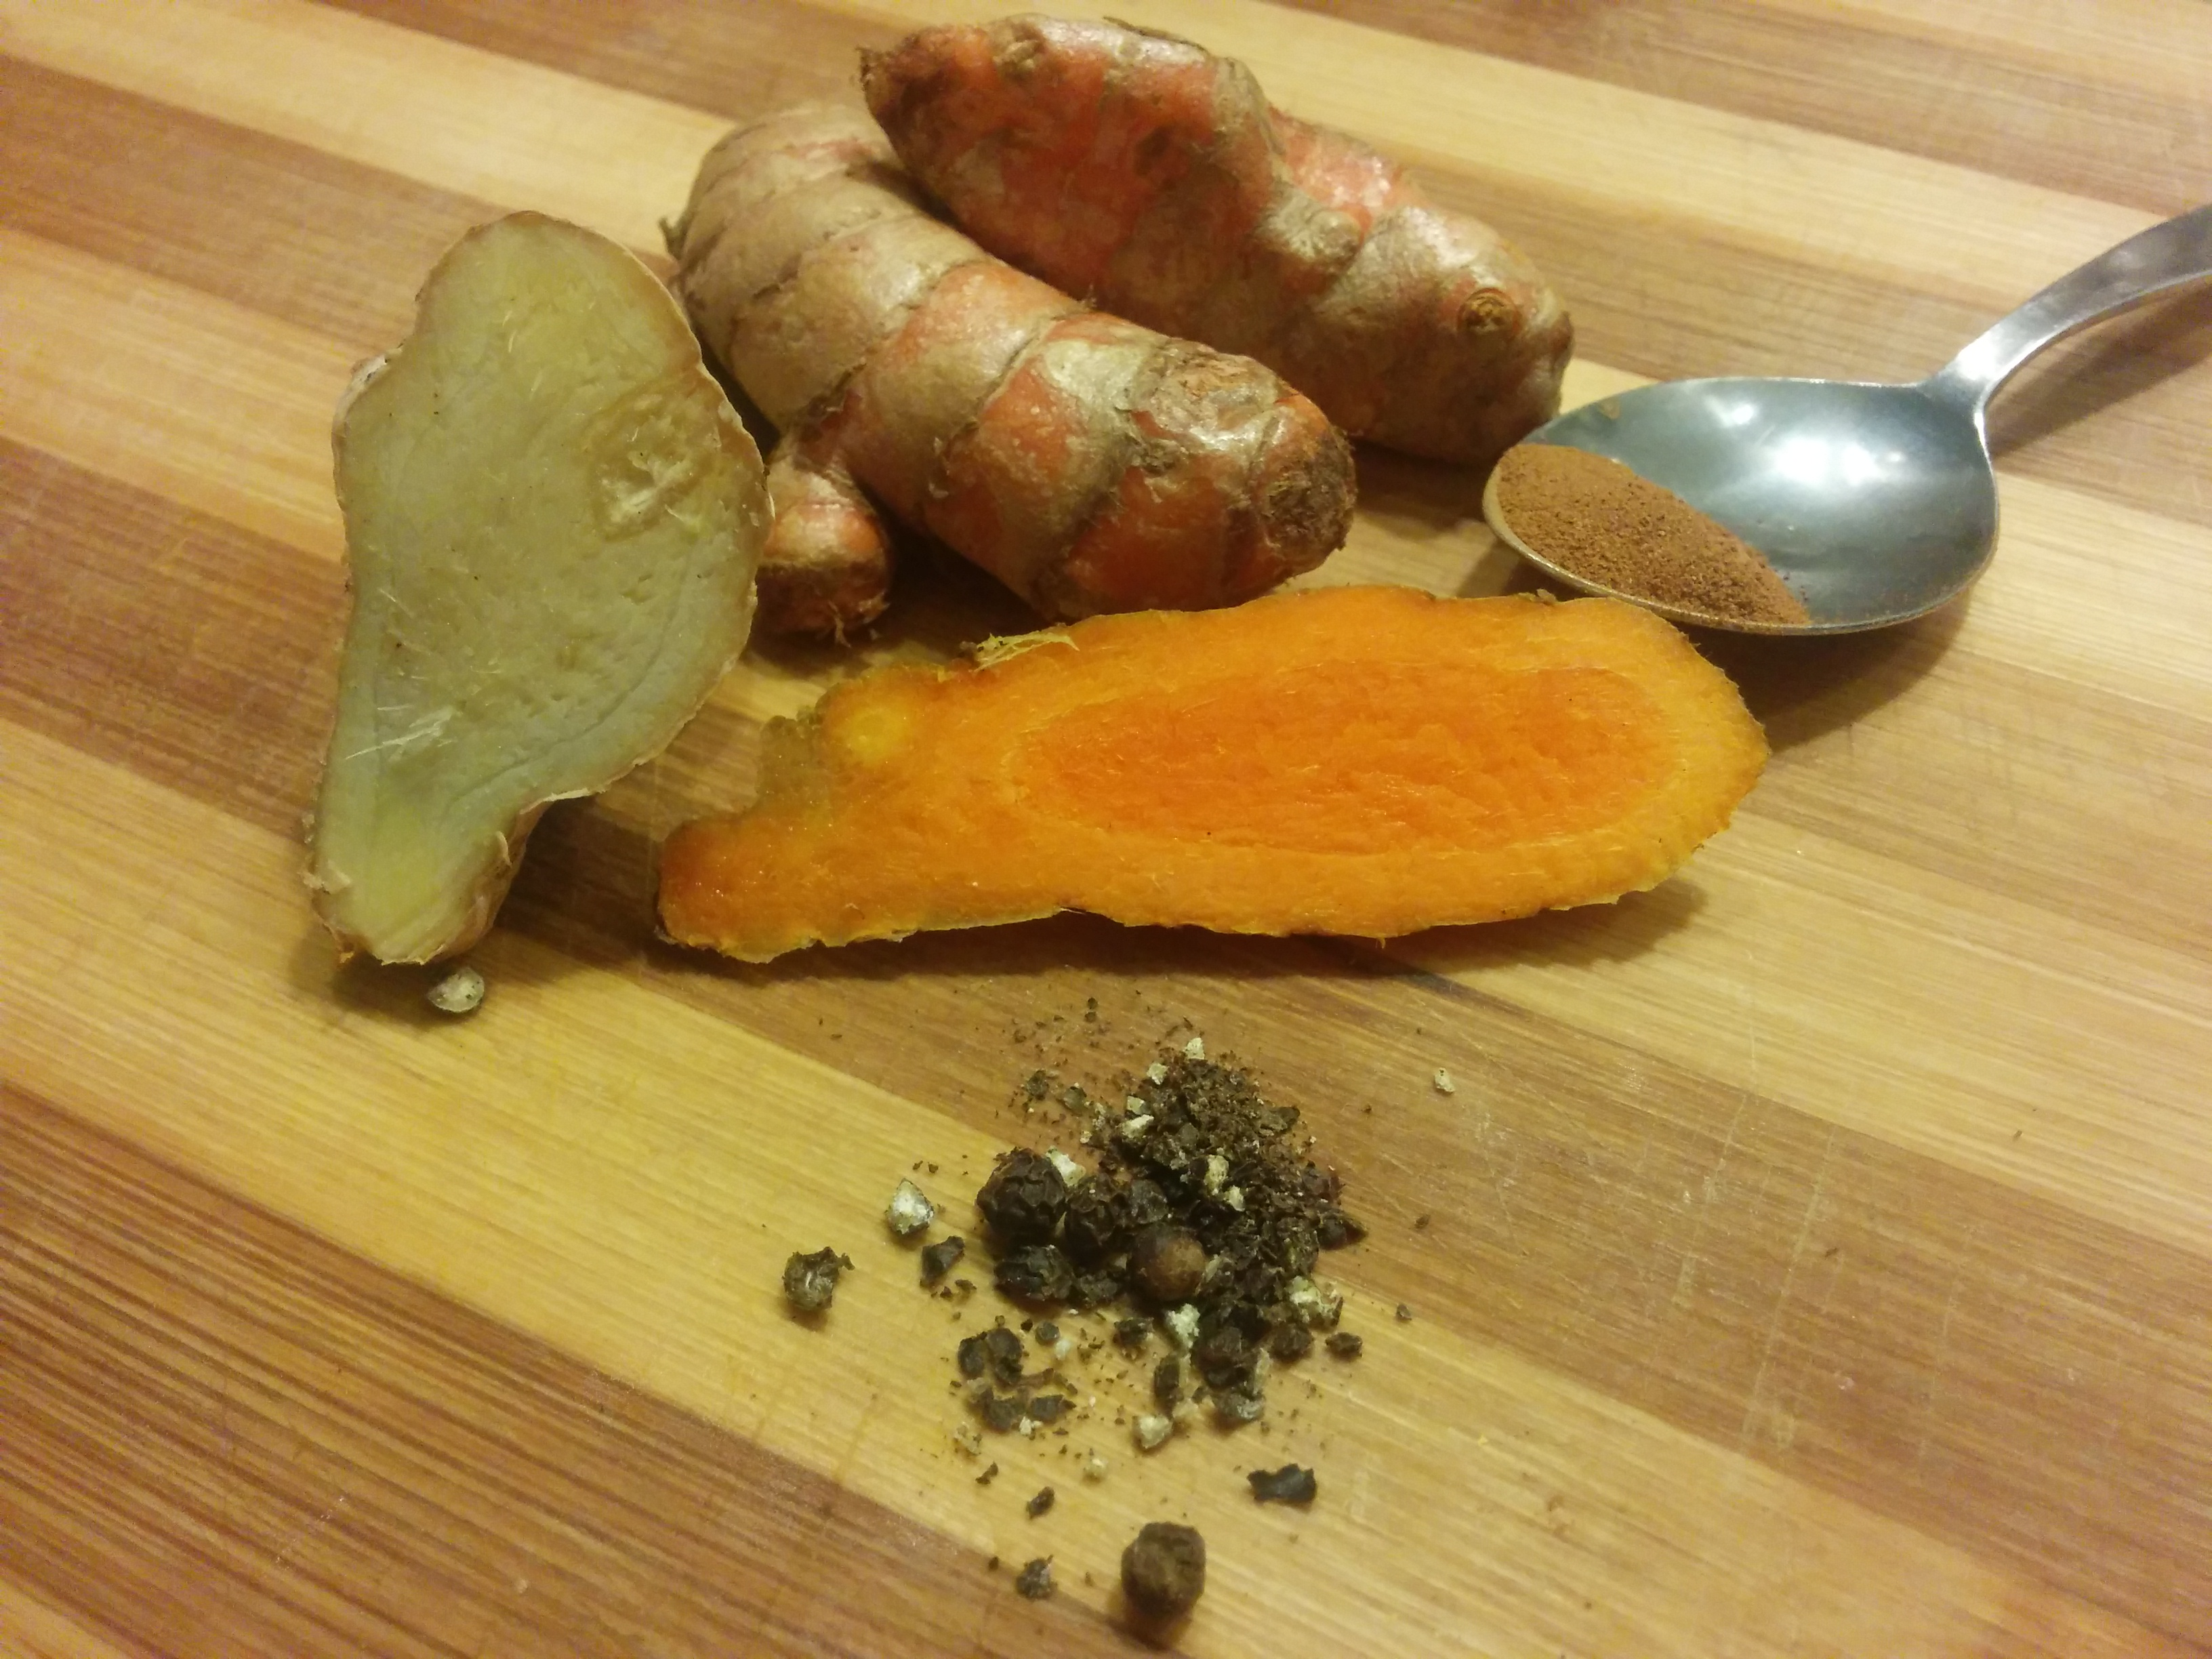 Ingredients for Turmeric Tea